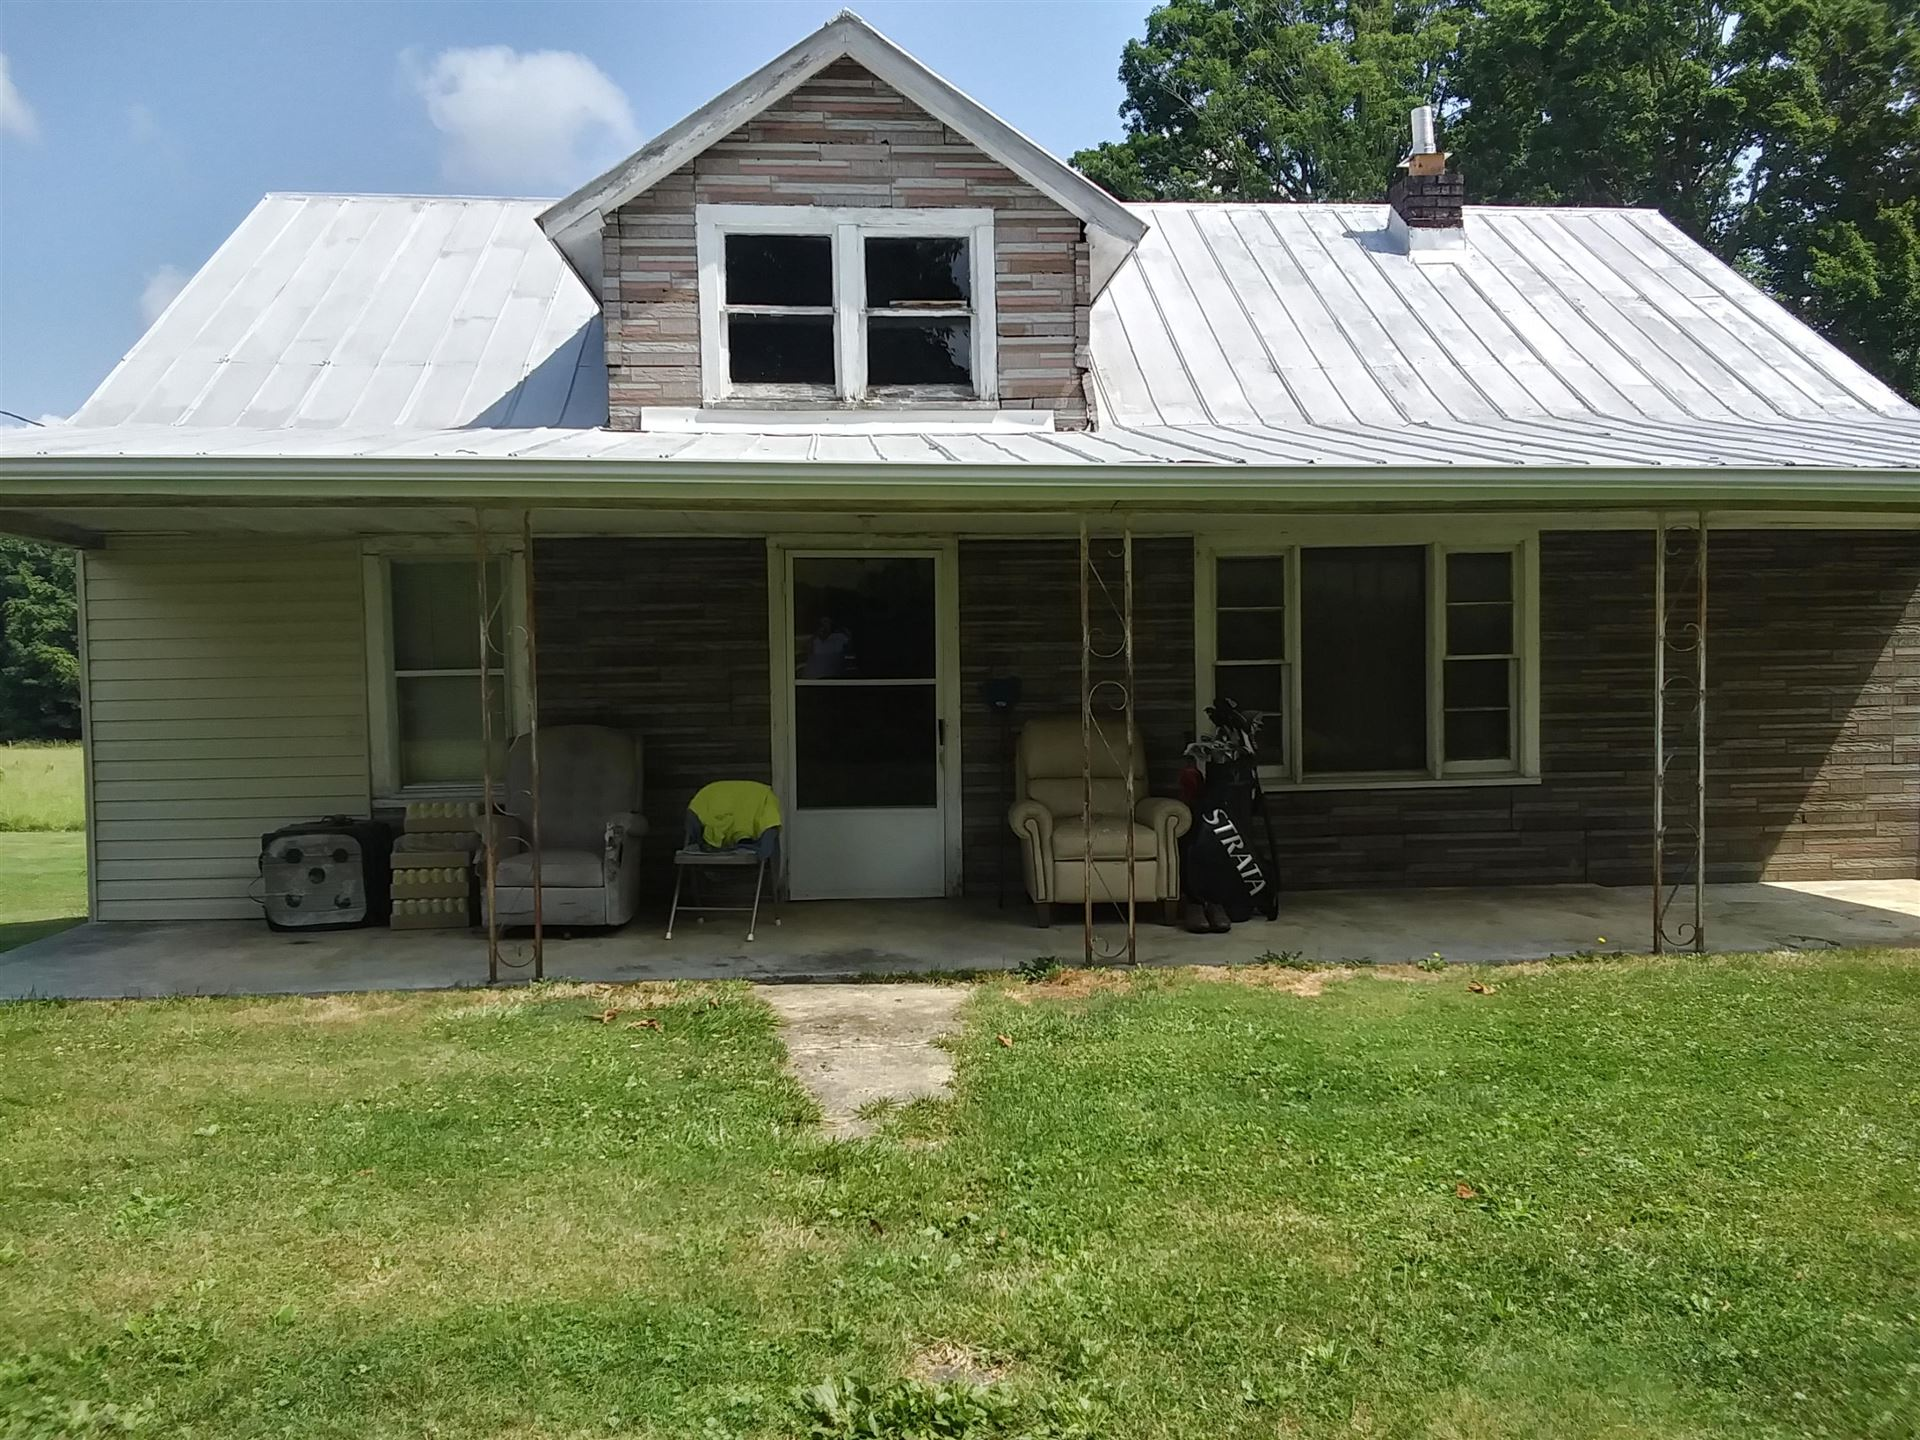 Photo of 269 Dry Fork Road Road, Chilhowie, VA 24319 (MLS # 9925170)